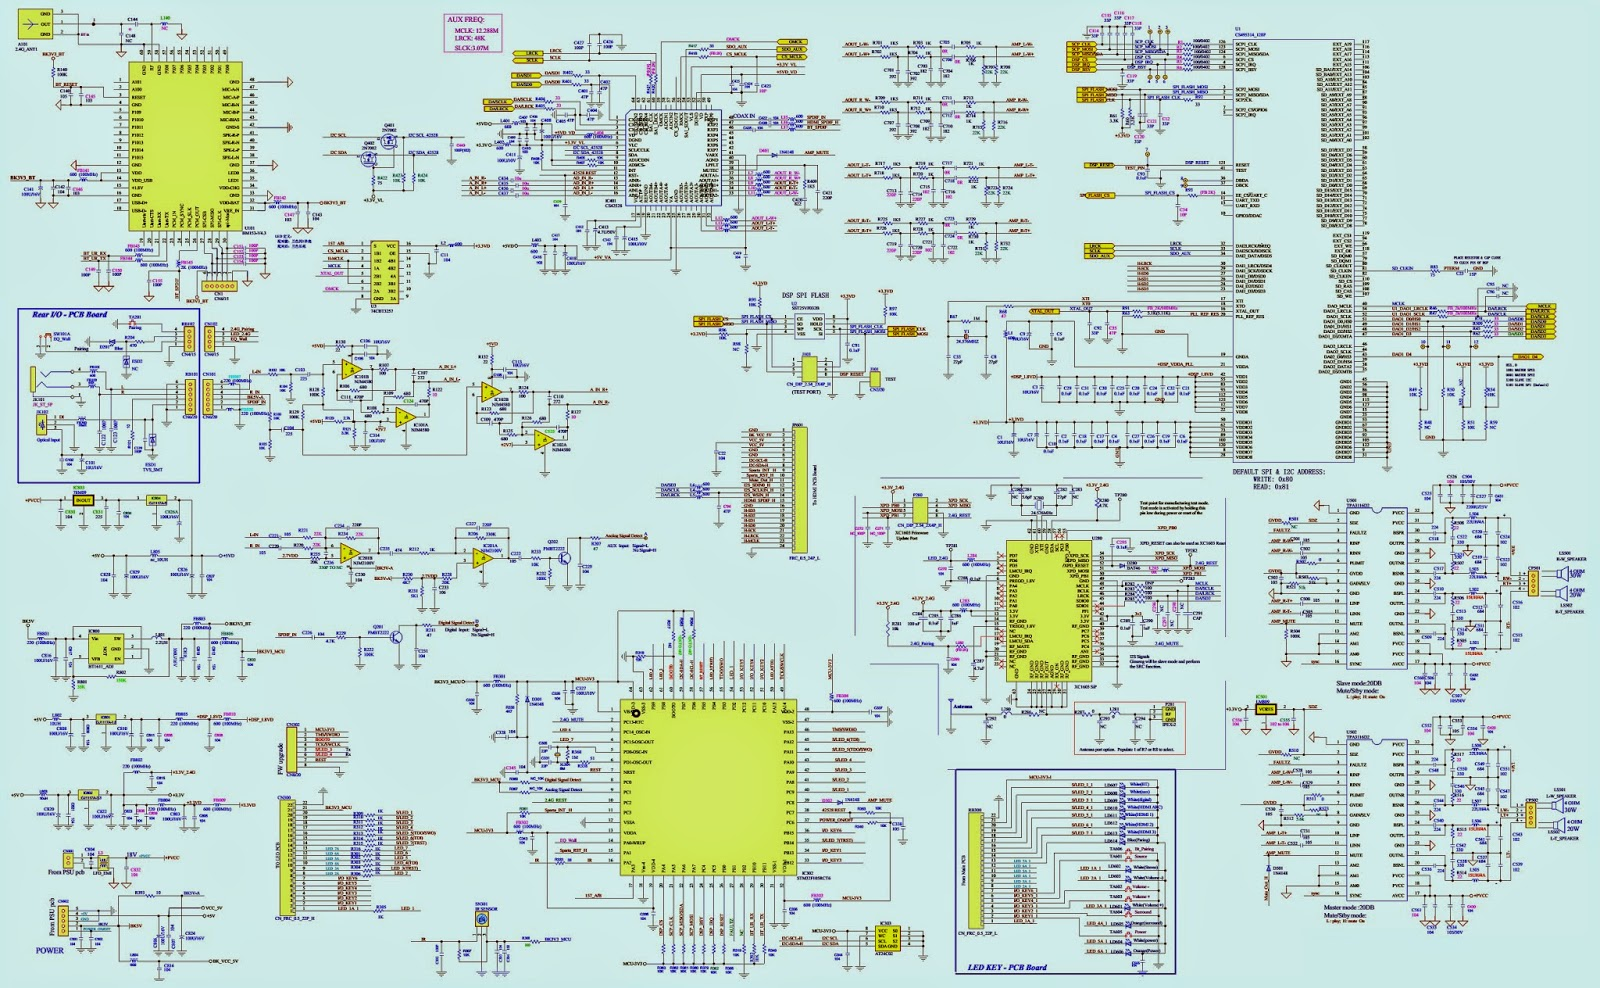 Jbl Sb400 Powered Soundbar Schematic Circuit Diagram Electro Wiring Click On The Schematics To Magnify